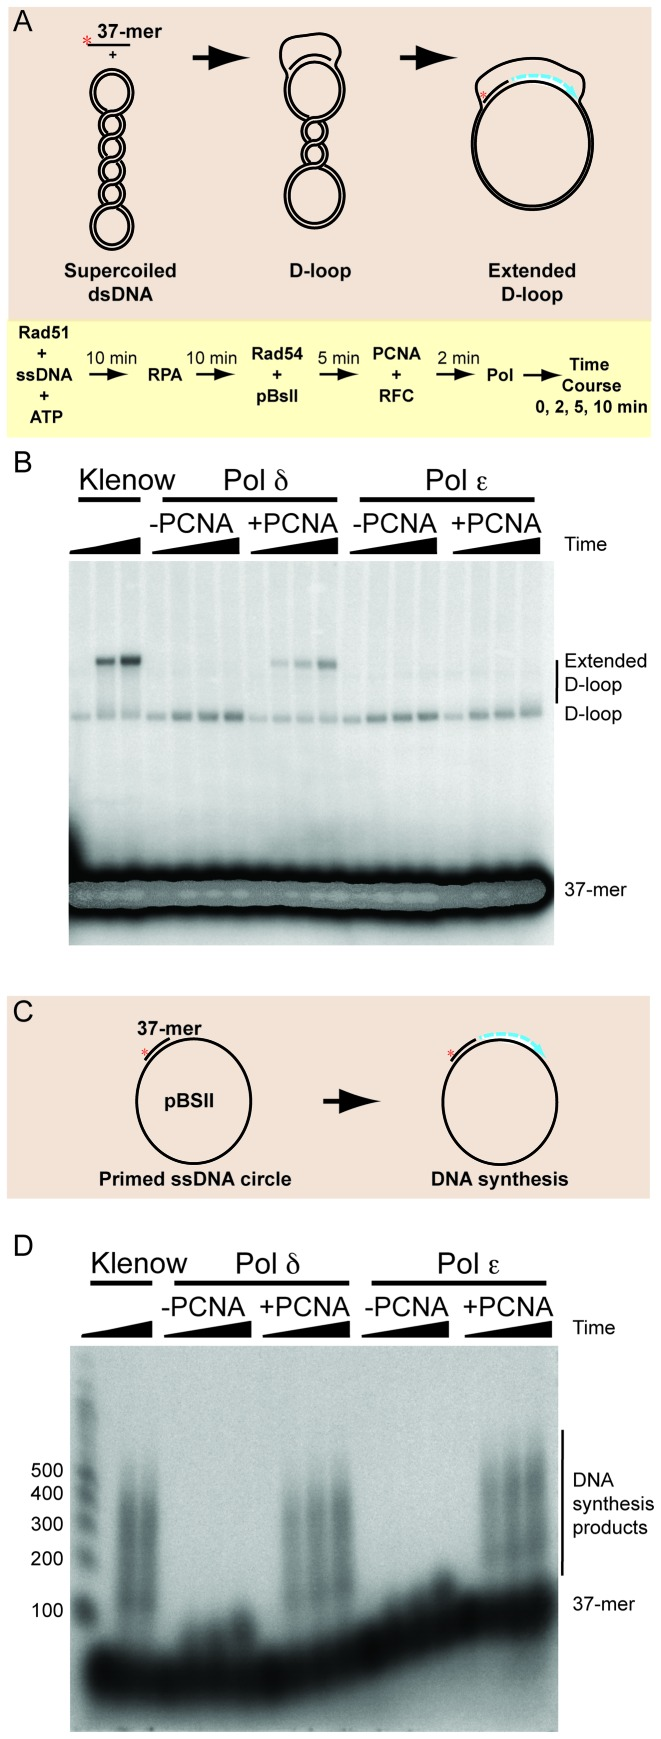 Pol ε poorly extends D-loops in comparison to Pol δ but is proficient to extend primed single-stranded DNA using the same substrates under the same conditions. ( A ) In vitro D-loop reactions using a 37-mer oligonucleotide were reconstituted using purified S. cerevisiae proteins as described in Materials and Methods. ( B ) Product analysis of reconstituted D-loop reactions containing either Klenow polymerase, Pol δ (10 nM) or Pol ε (10 nM) at 0, 2 (not for Klenow), 5 and 10 min extension times. ( C ) Extension of primed single-stranded circular template DNA using a 37-mer oligonucleotide. ( D ) Product analysis of primer extension on denaturing gels of reaction containing Klenow polymerase, Pol δ (10 nM) or Pol ε (10 nM) each plus or minus 10 nM PCNA/RFC at 0, 2 (not for Klenow), 5 and 10 min extension times. A 100 nt size ladder is shown in the left-most lane.